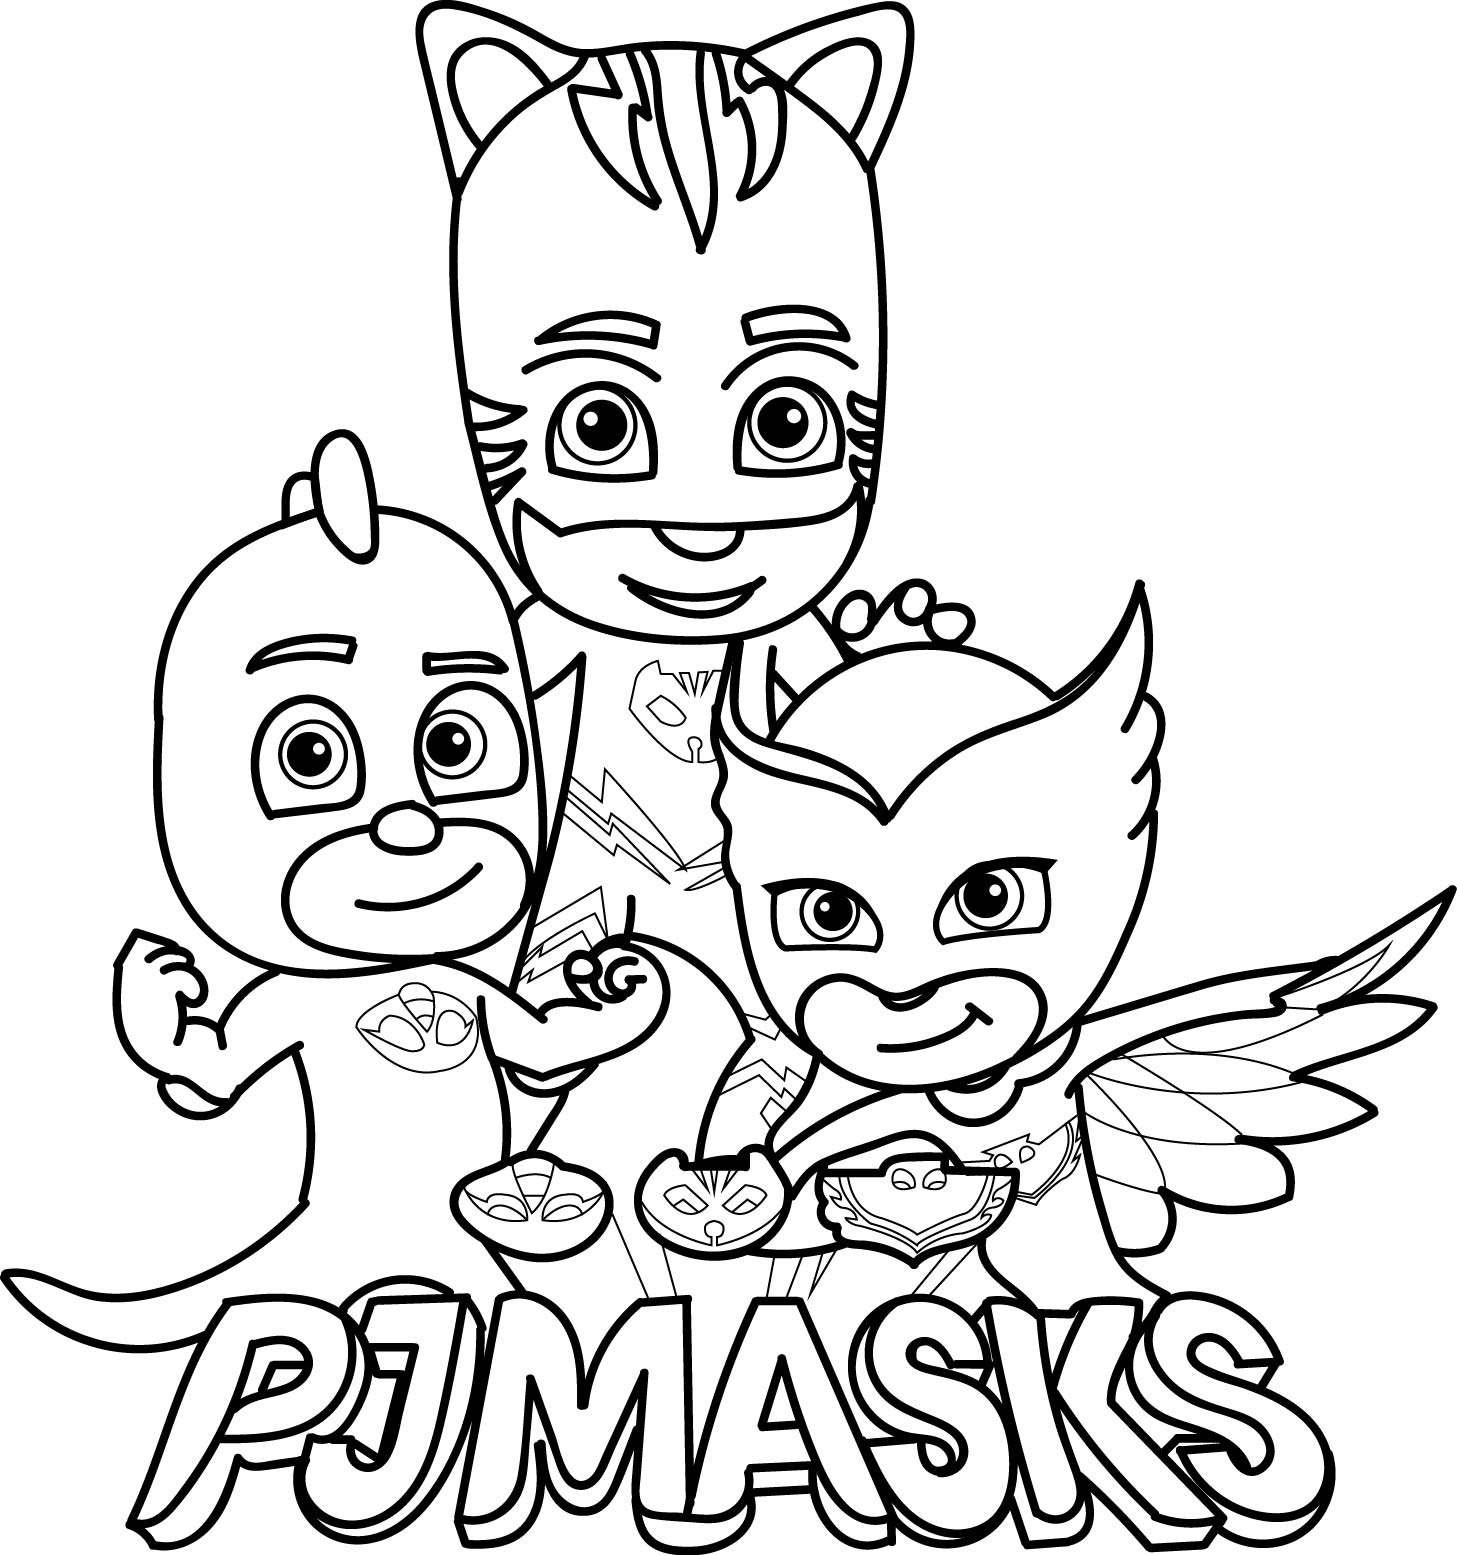 Disney pj masks coloring sheets -  Pj Masks Coloring Page Download